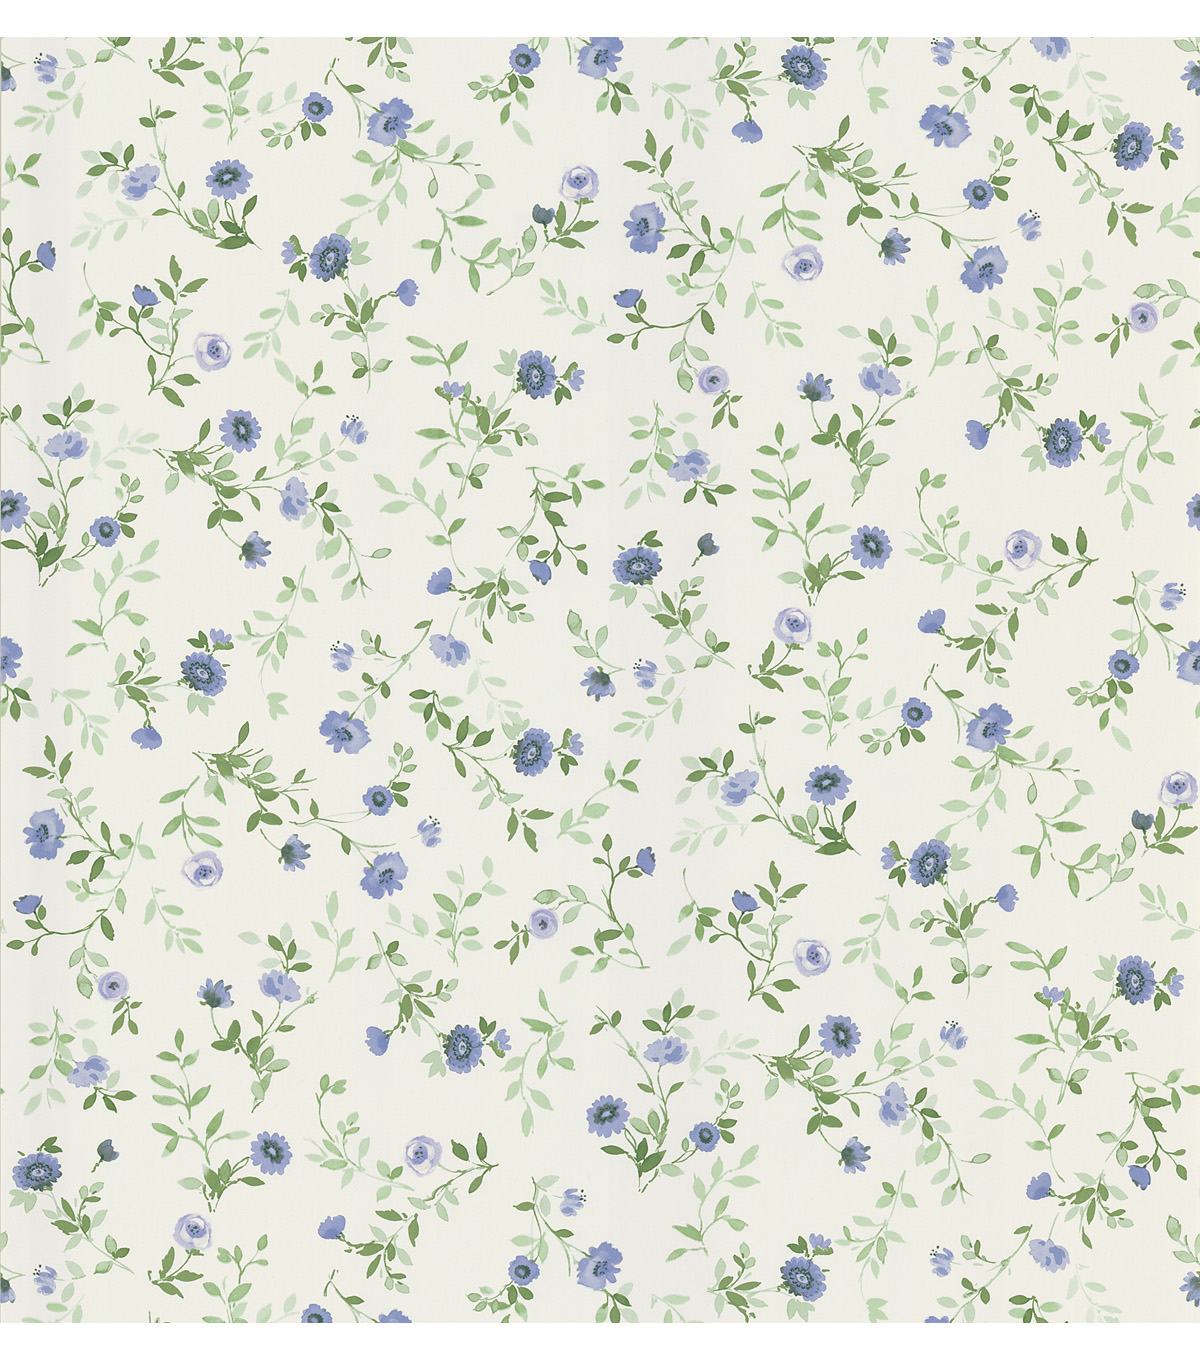 Garden Blue Wash Floral Wallpaper Sample